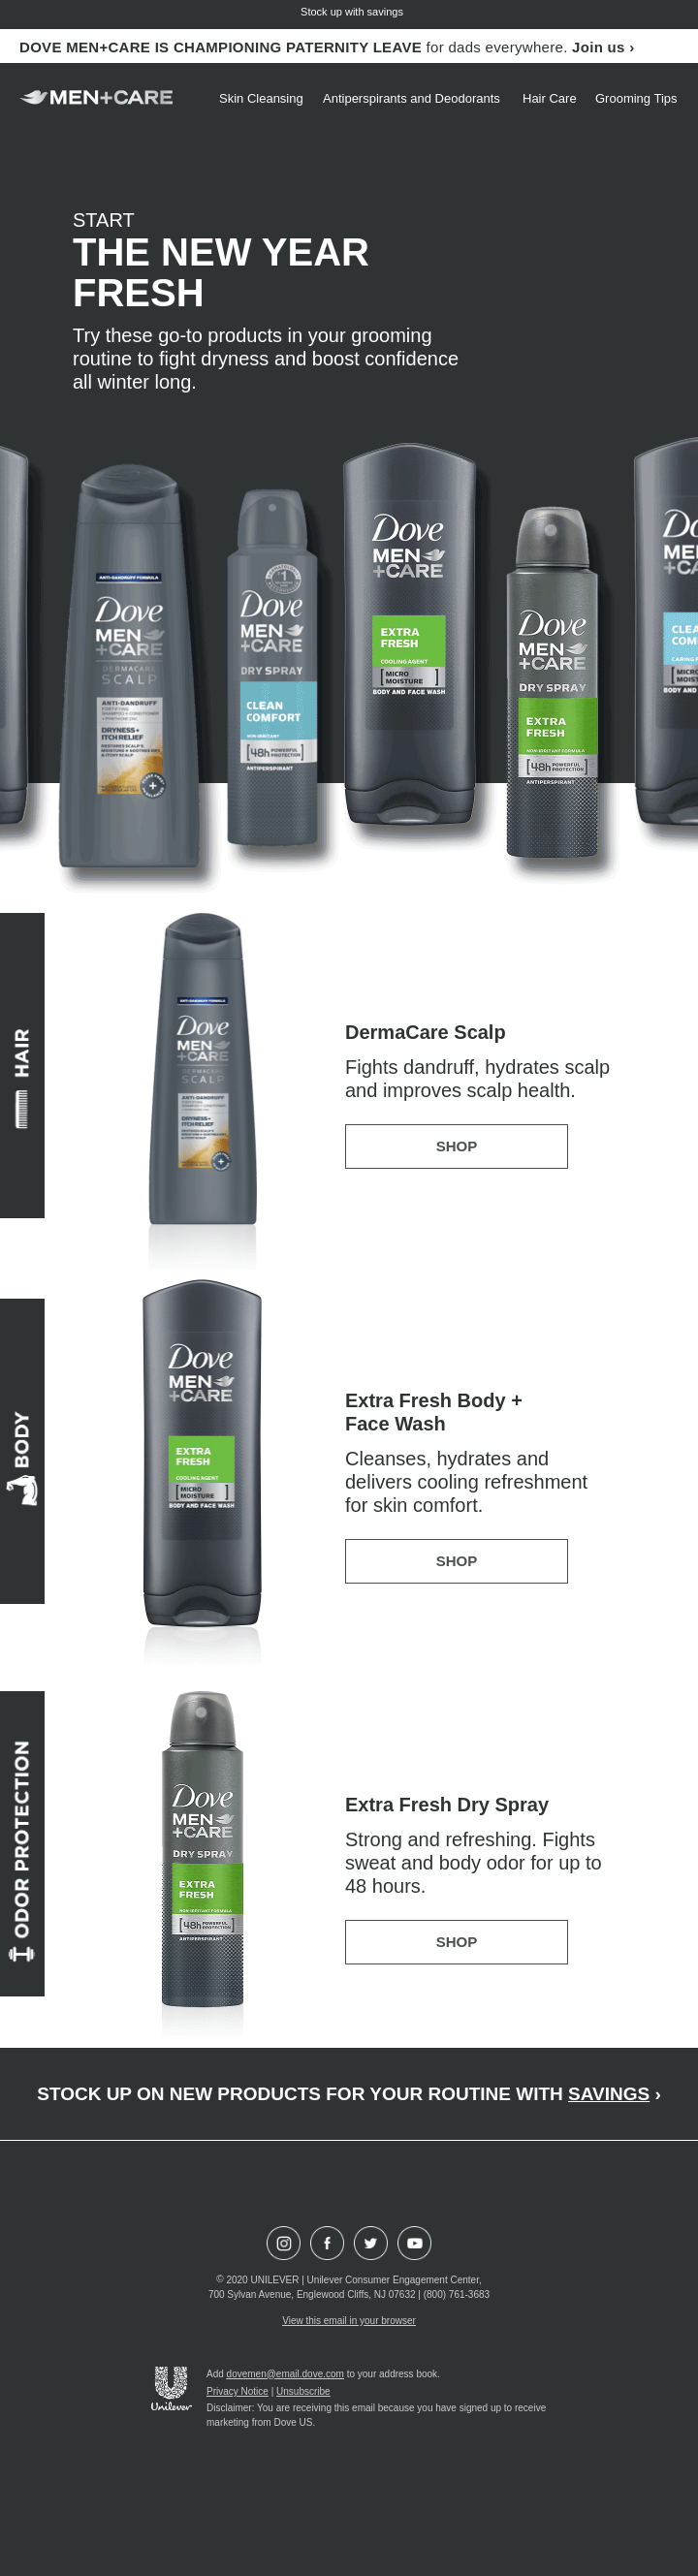 New Year, new grooming routine